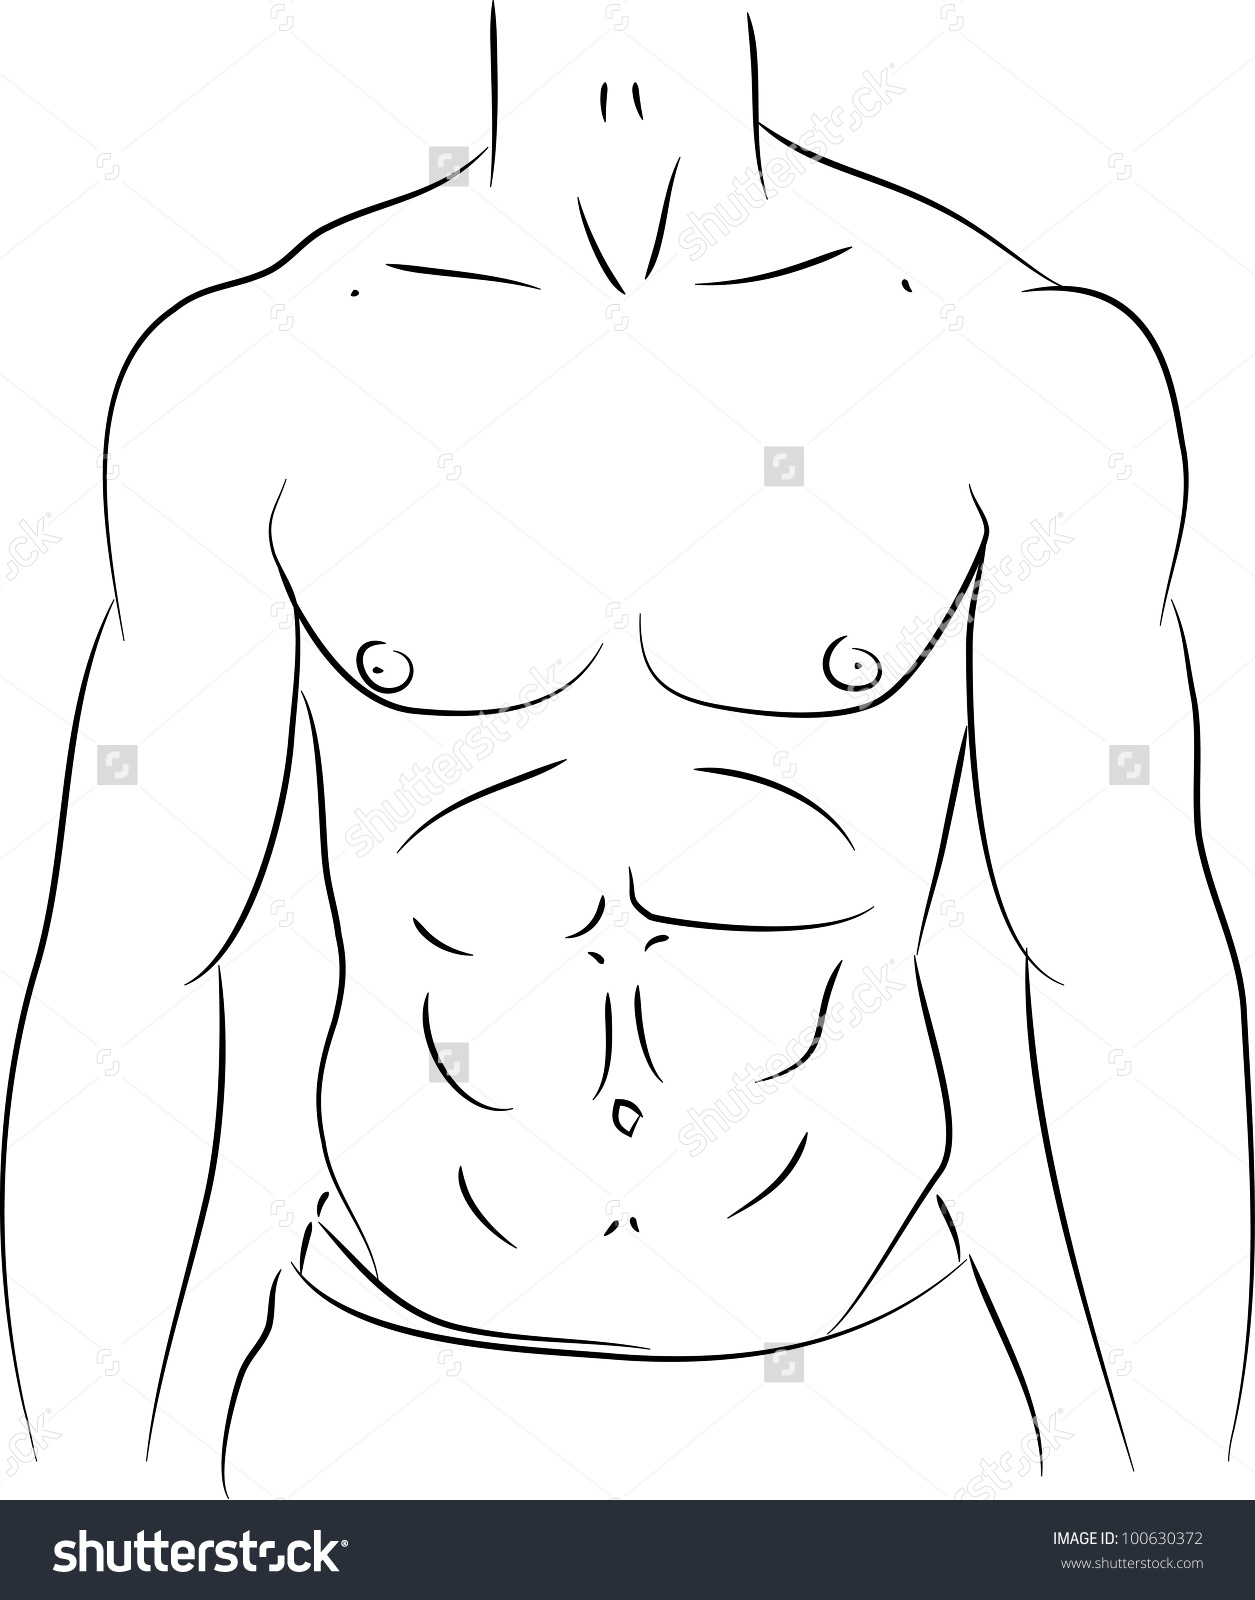 Six pack abs clipart.